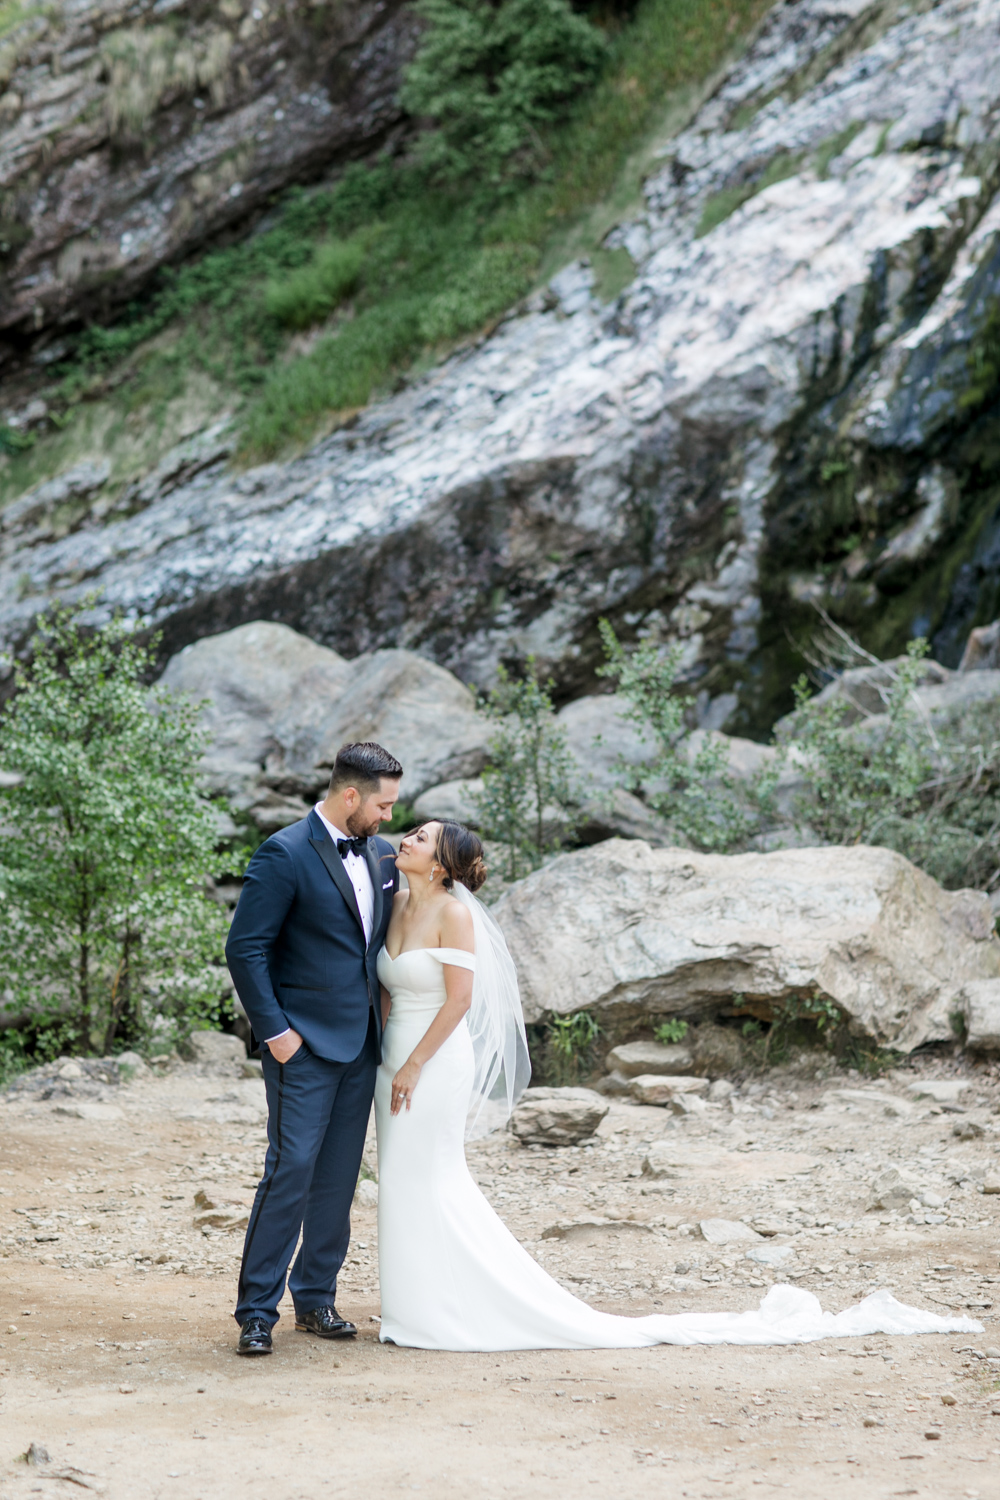 bride and groom looking at each other groom is wearing a dark navy tux and bride has a plain elegant wedding dress in front of a powerscourt waterfall in ireland